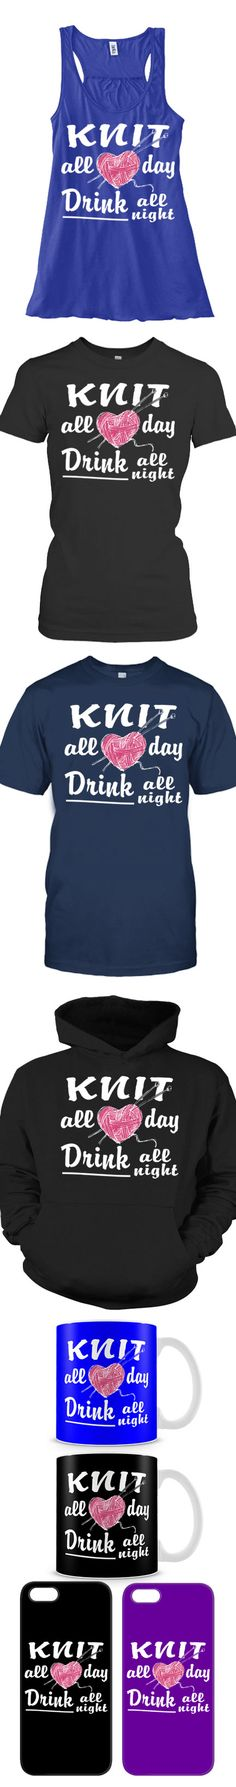 Love Knitting And Drinking? Then Click The Image To Buy It Now or Tag Someone You Want To Buy This For.